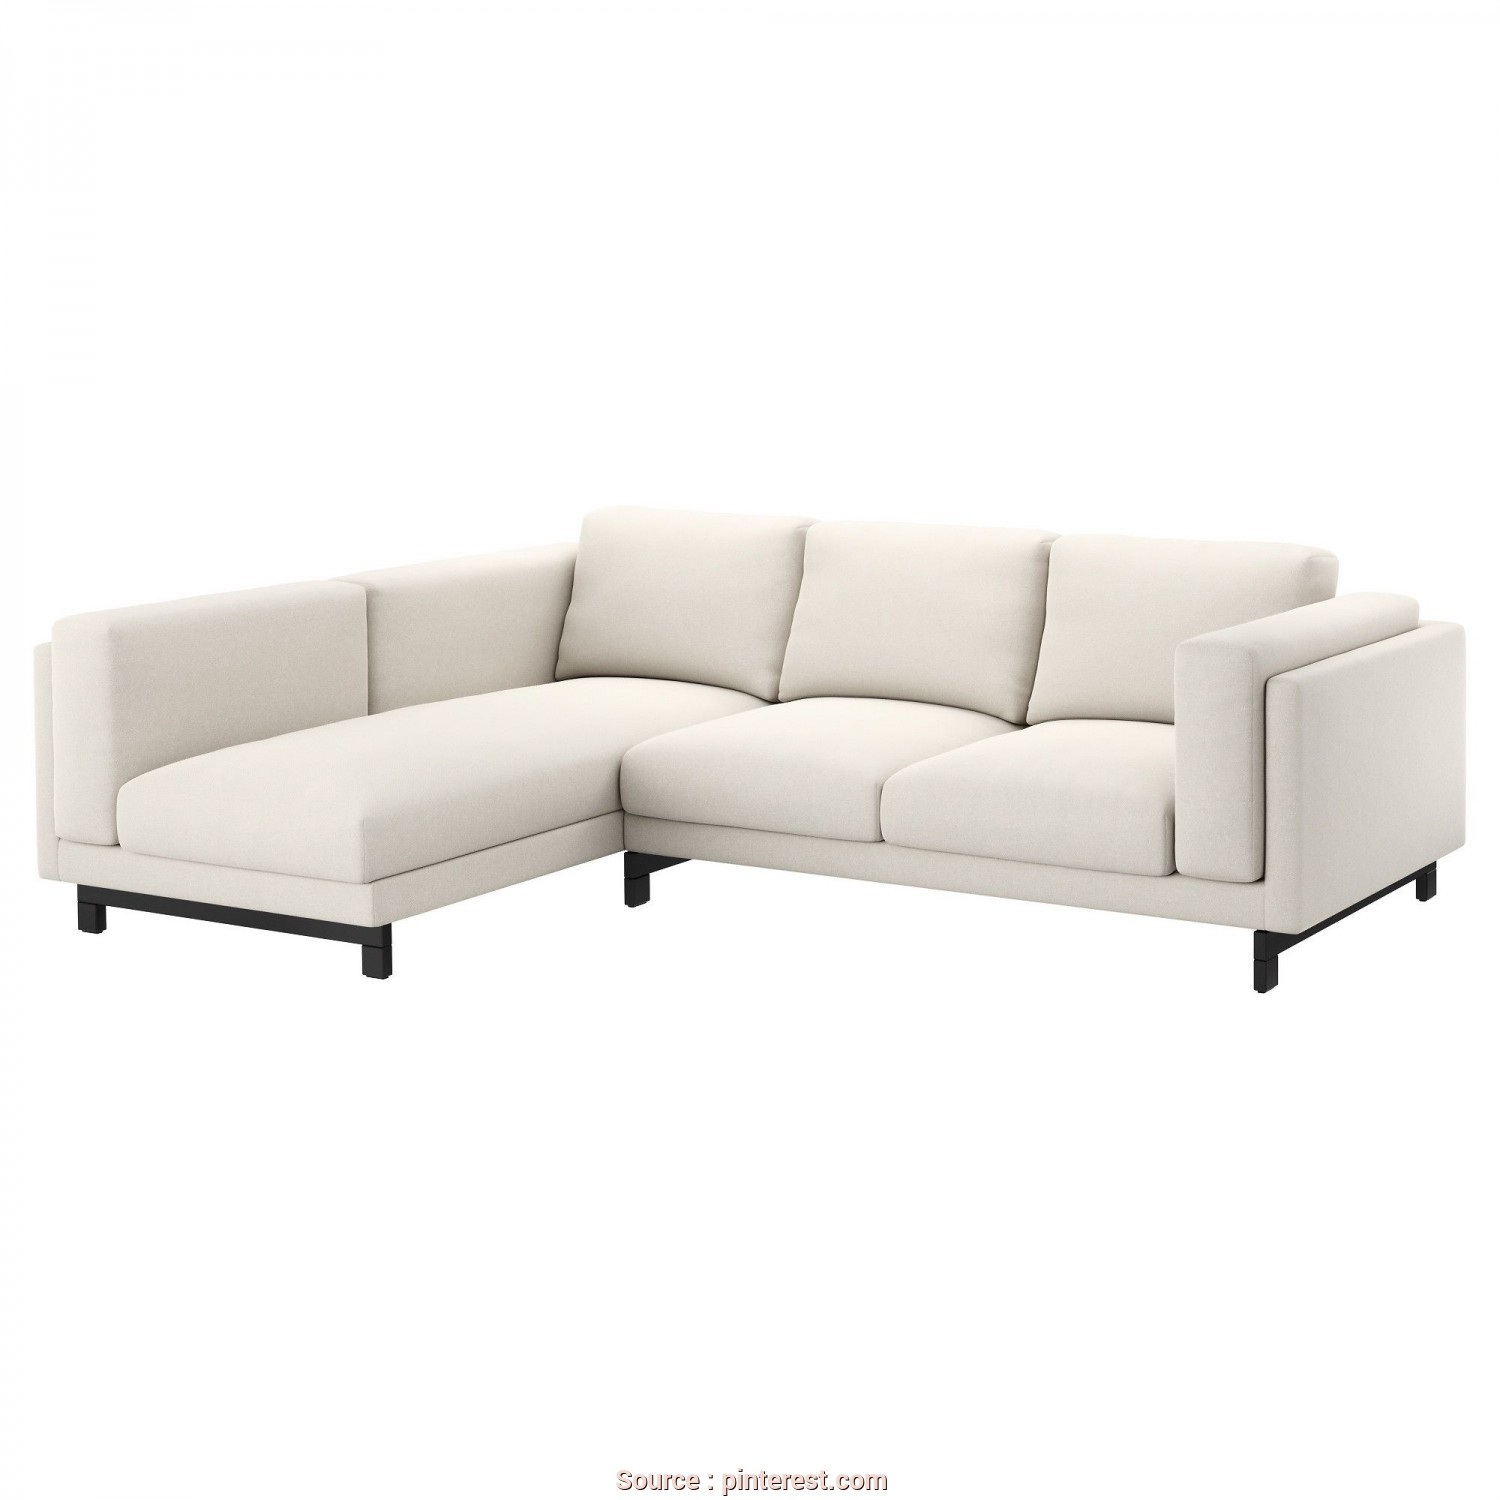 Ikea Divano Nockeby 3 Posti, Semplice IKEA, NOCKEBY, Sectional, 3-Seat Left, Left/Tallmyra Light Beige, Wood, ,, Get Extra Soft Comfort, Support Because, Thick Seat Cushions Have A